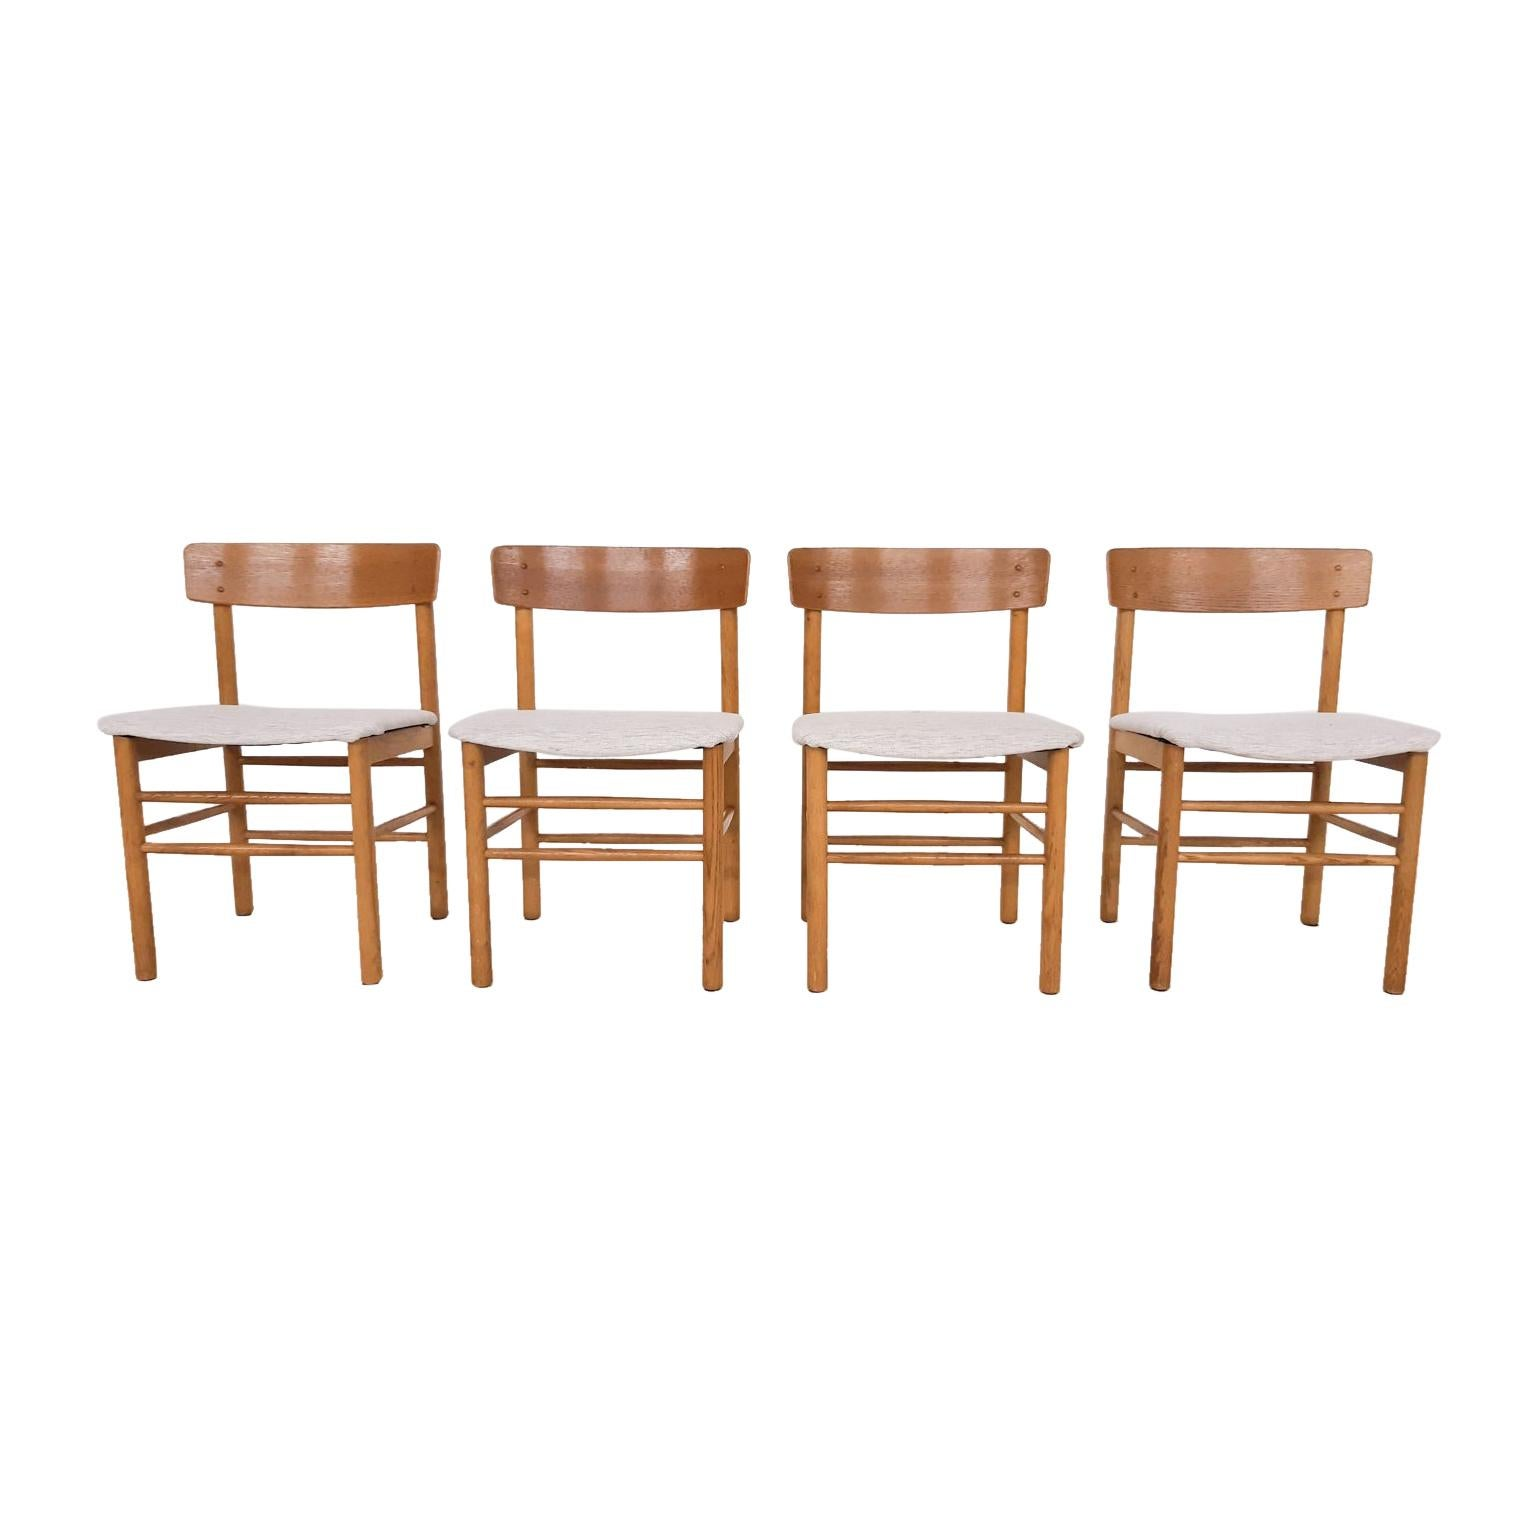 Set of 4 Oak Dining Chairs in the Style of Borge Mogensen, Denmark, 1960s